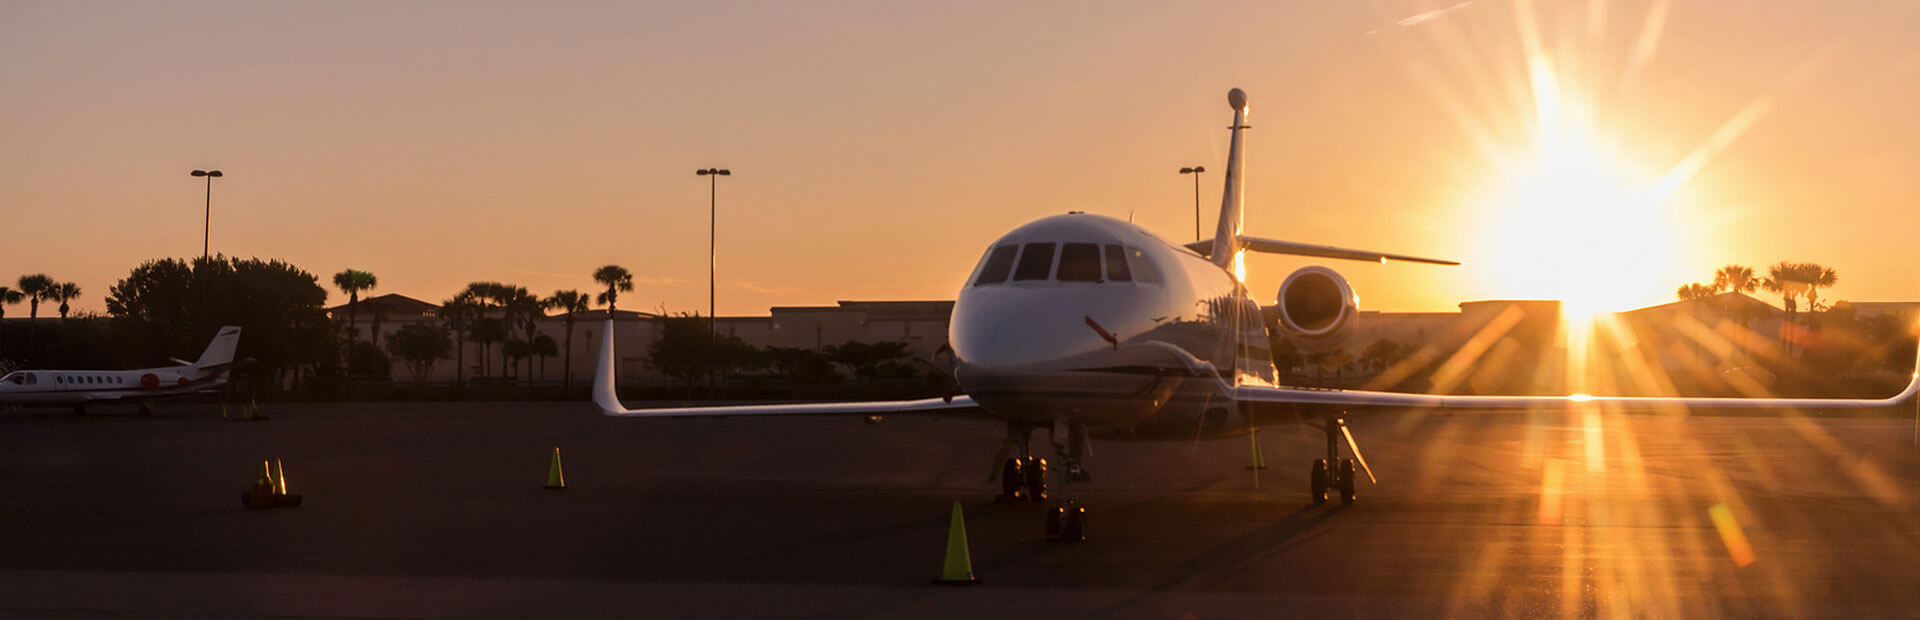 Private Aircraft Listings & Showings